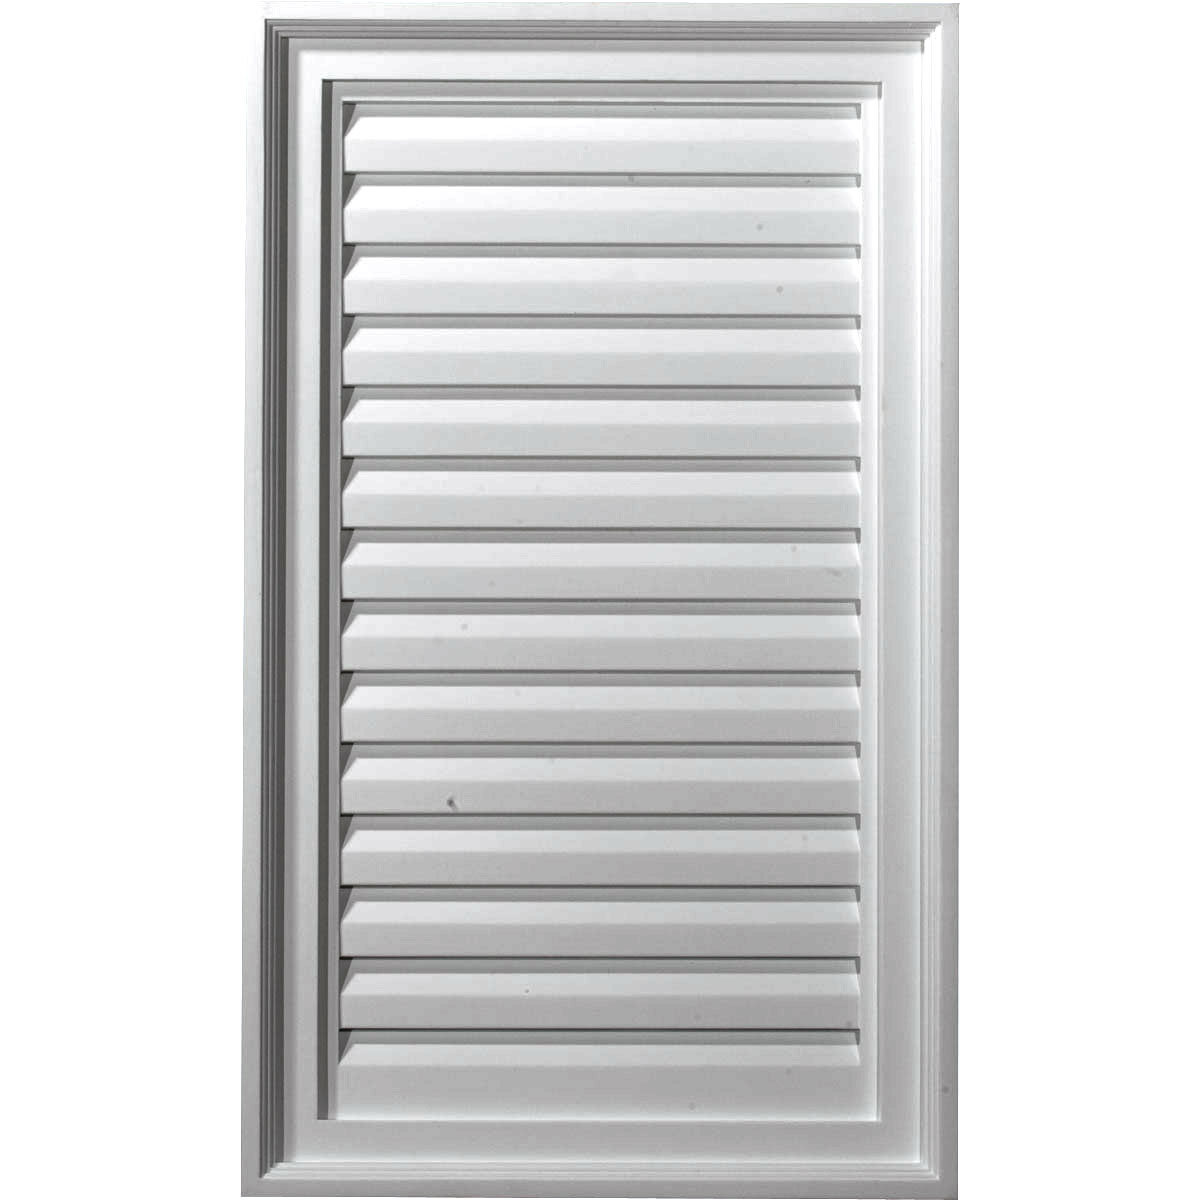 Ekena millwork gvve18x25d 18 inch w x 25 inch h vertical ure for Decorative louvers